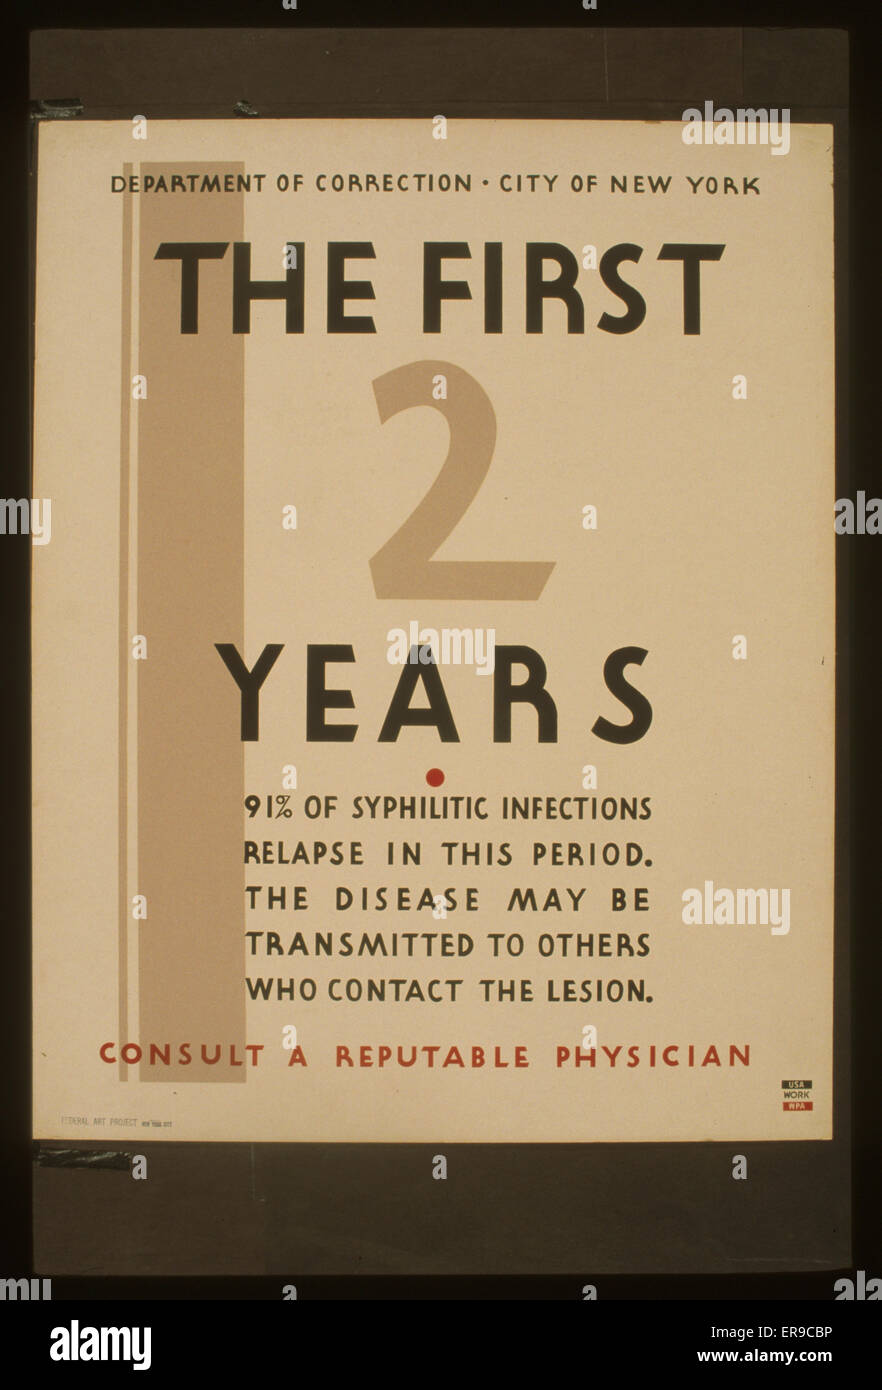 The first 2 years consult a reputable physician 91% of syphilitic infections relapse in this period : The disease - Stock Image